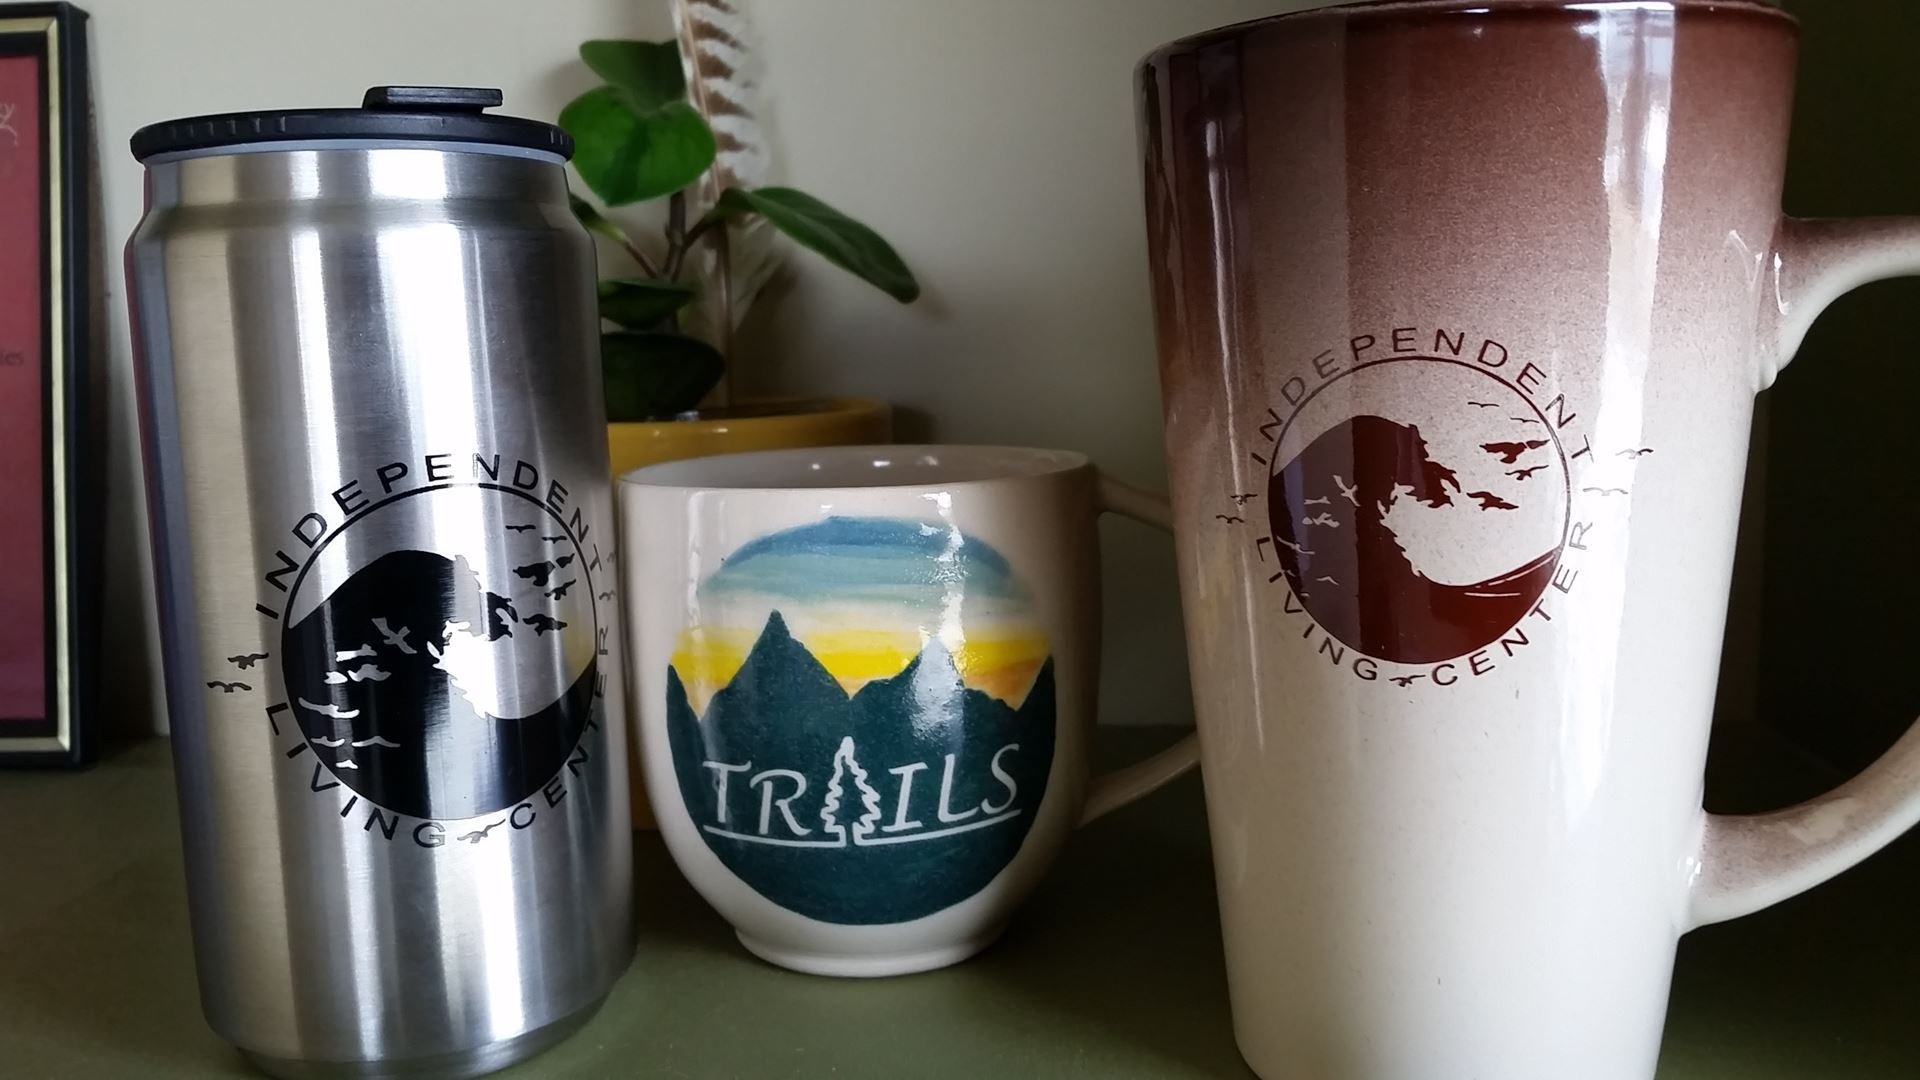 Photo of coffee mugs with ILC and TRAILS logos